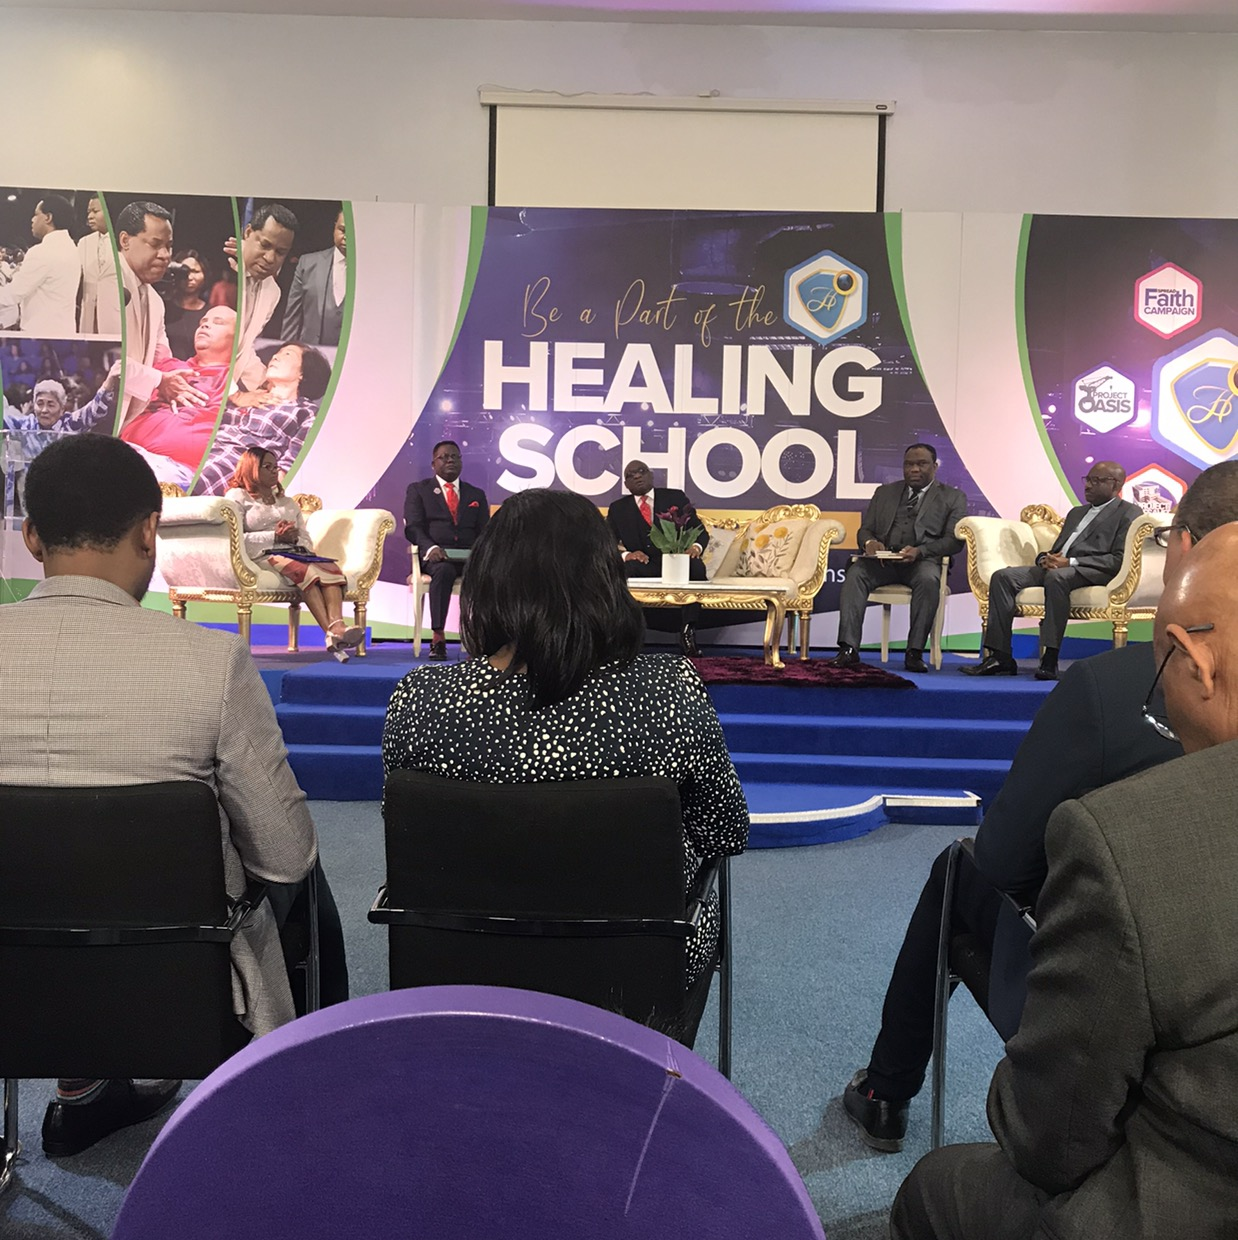 Live at the Healing School